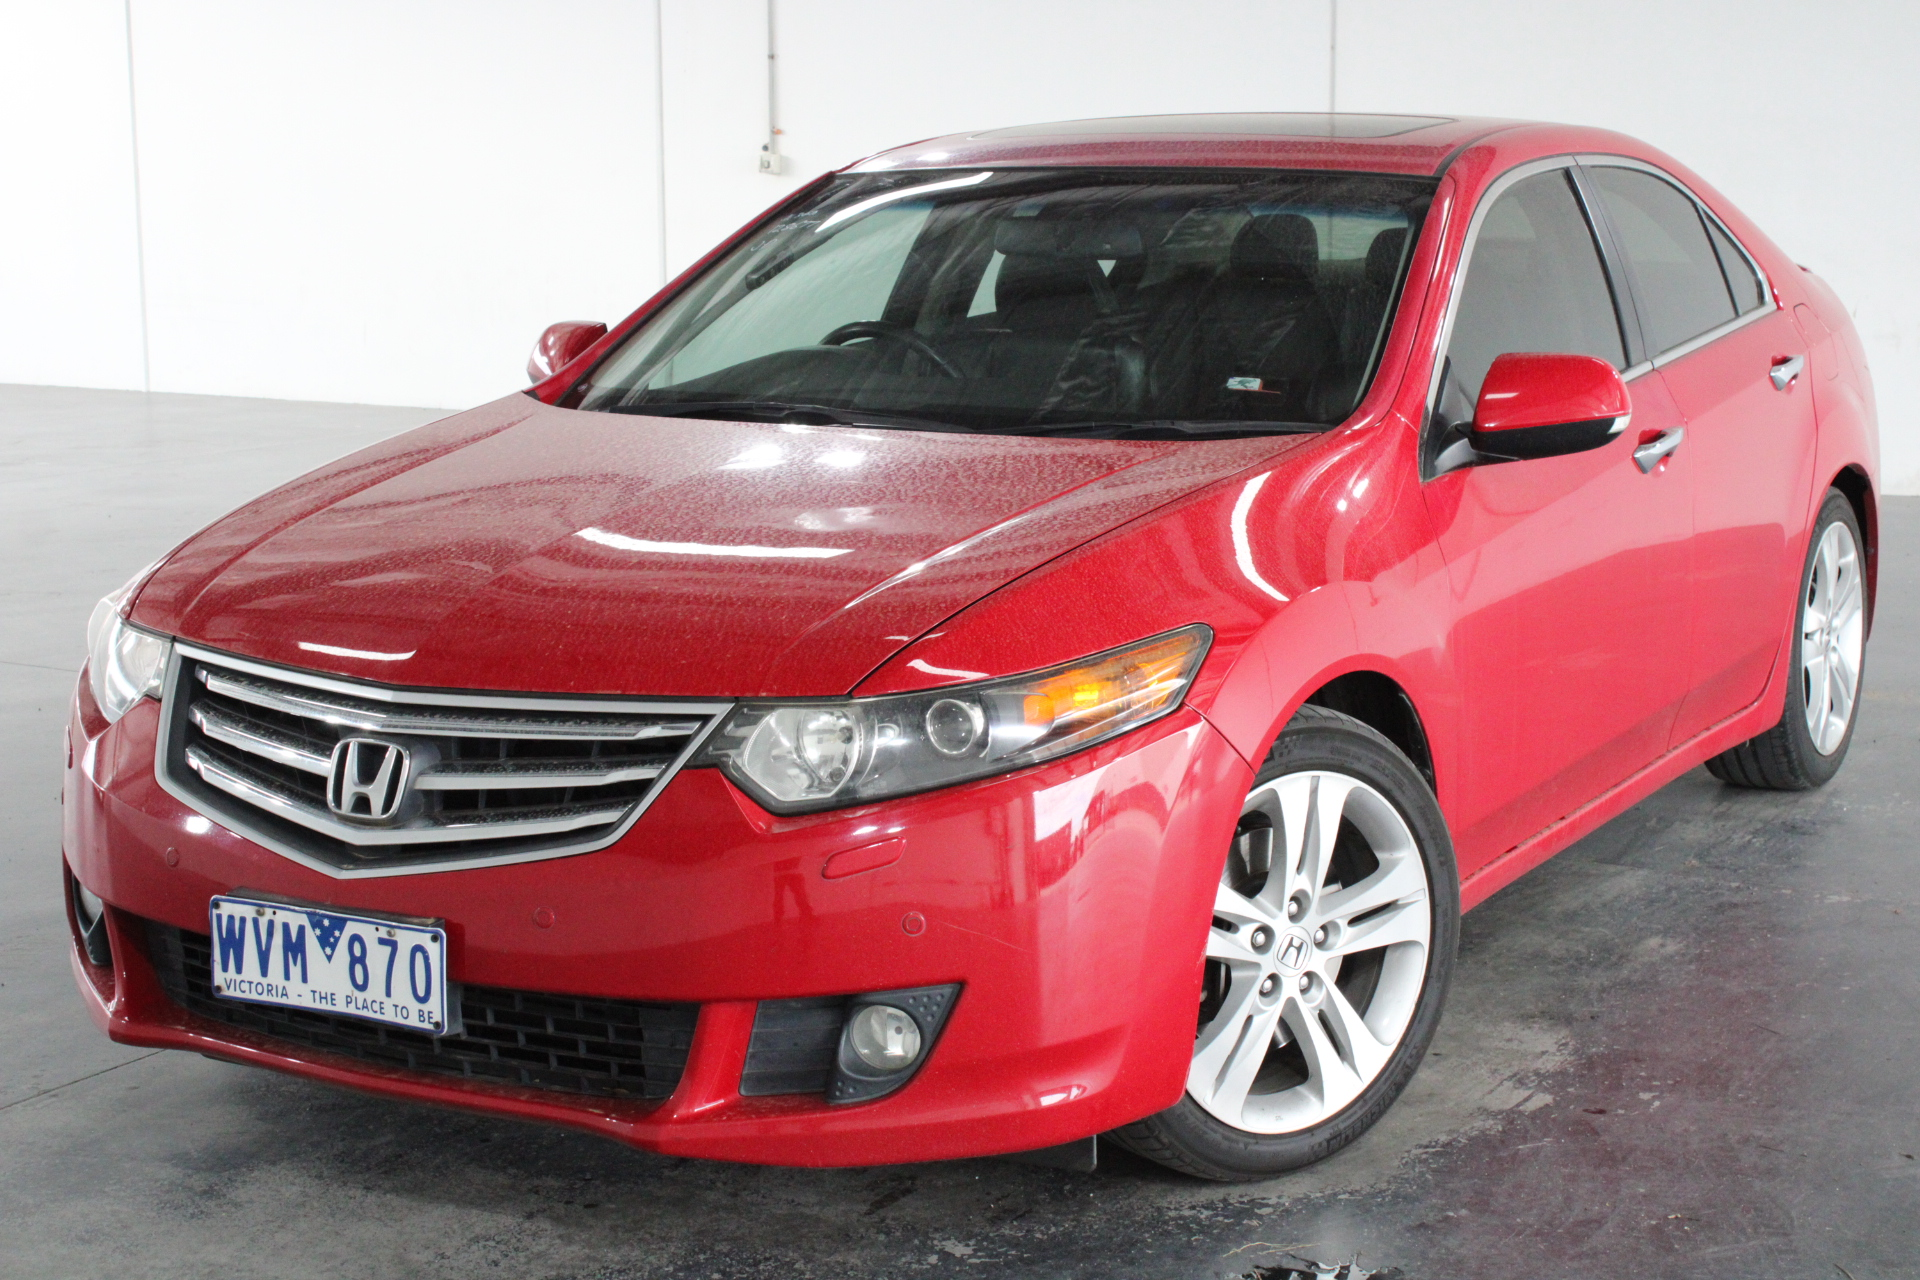 2008 Honda Accord Euro Luxury 8TH GEN Manual Sedan